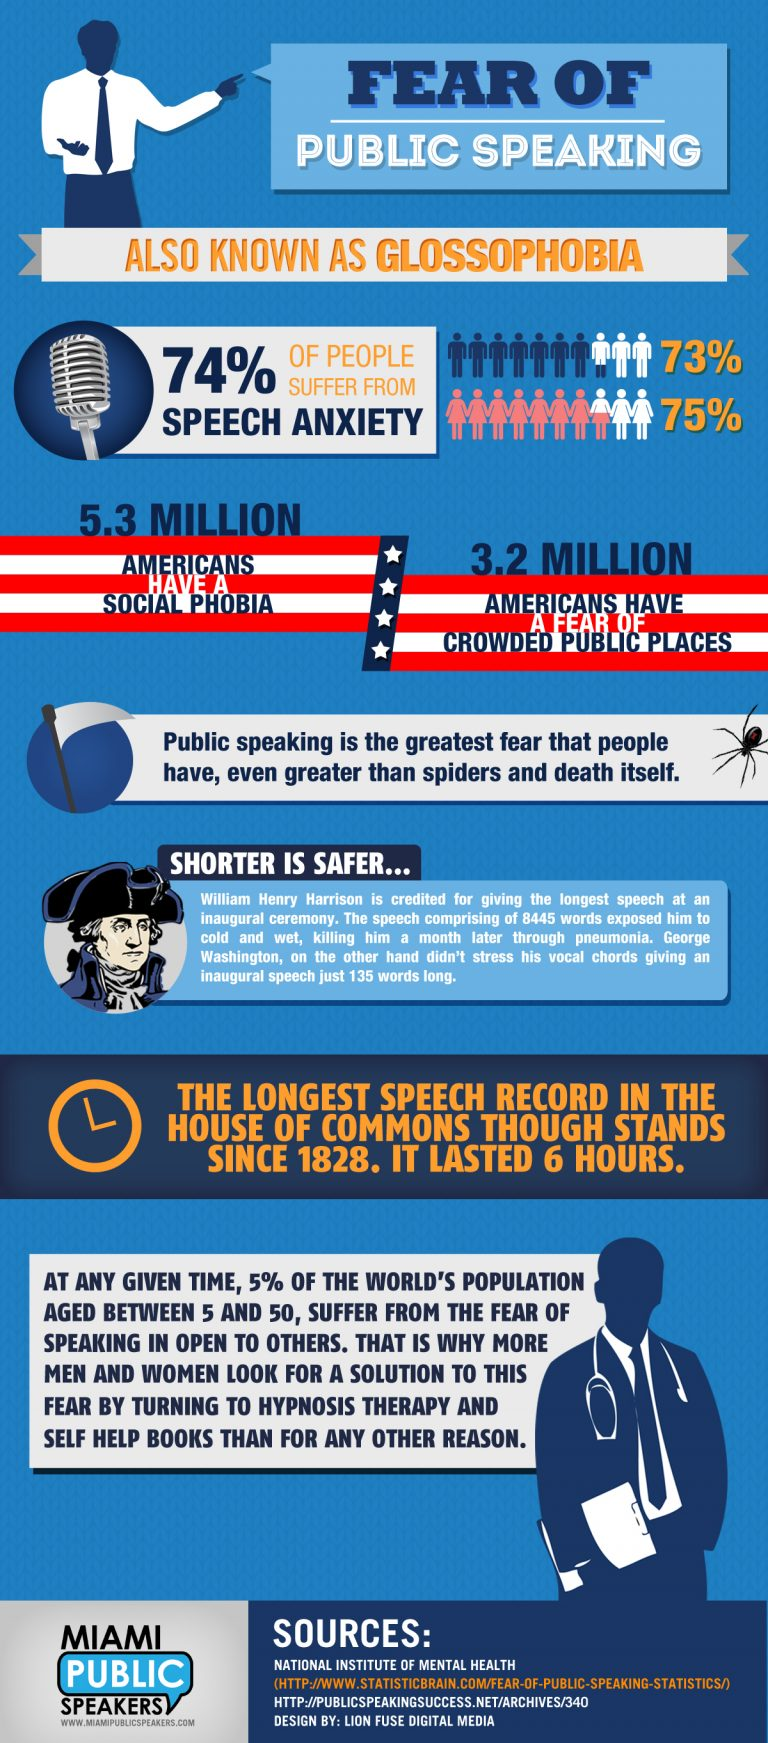 fear of public speaking Glossophobia, also known as the fear of public speaking, is an all-too common phenomenon that millions of people around the world struggle with this condition is just one type of social phobia that has the potential to significantly affect your personal and professional relationships, as well as your overall quality of life.